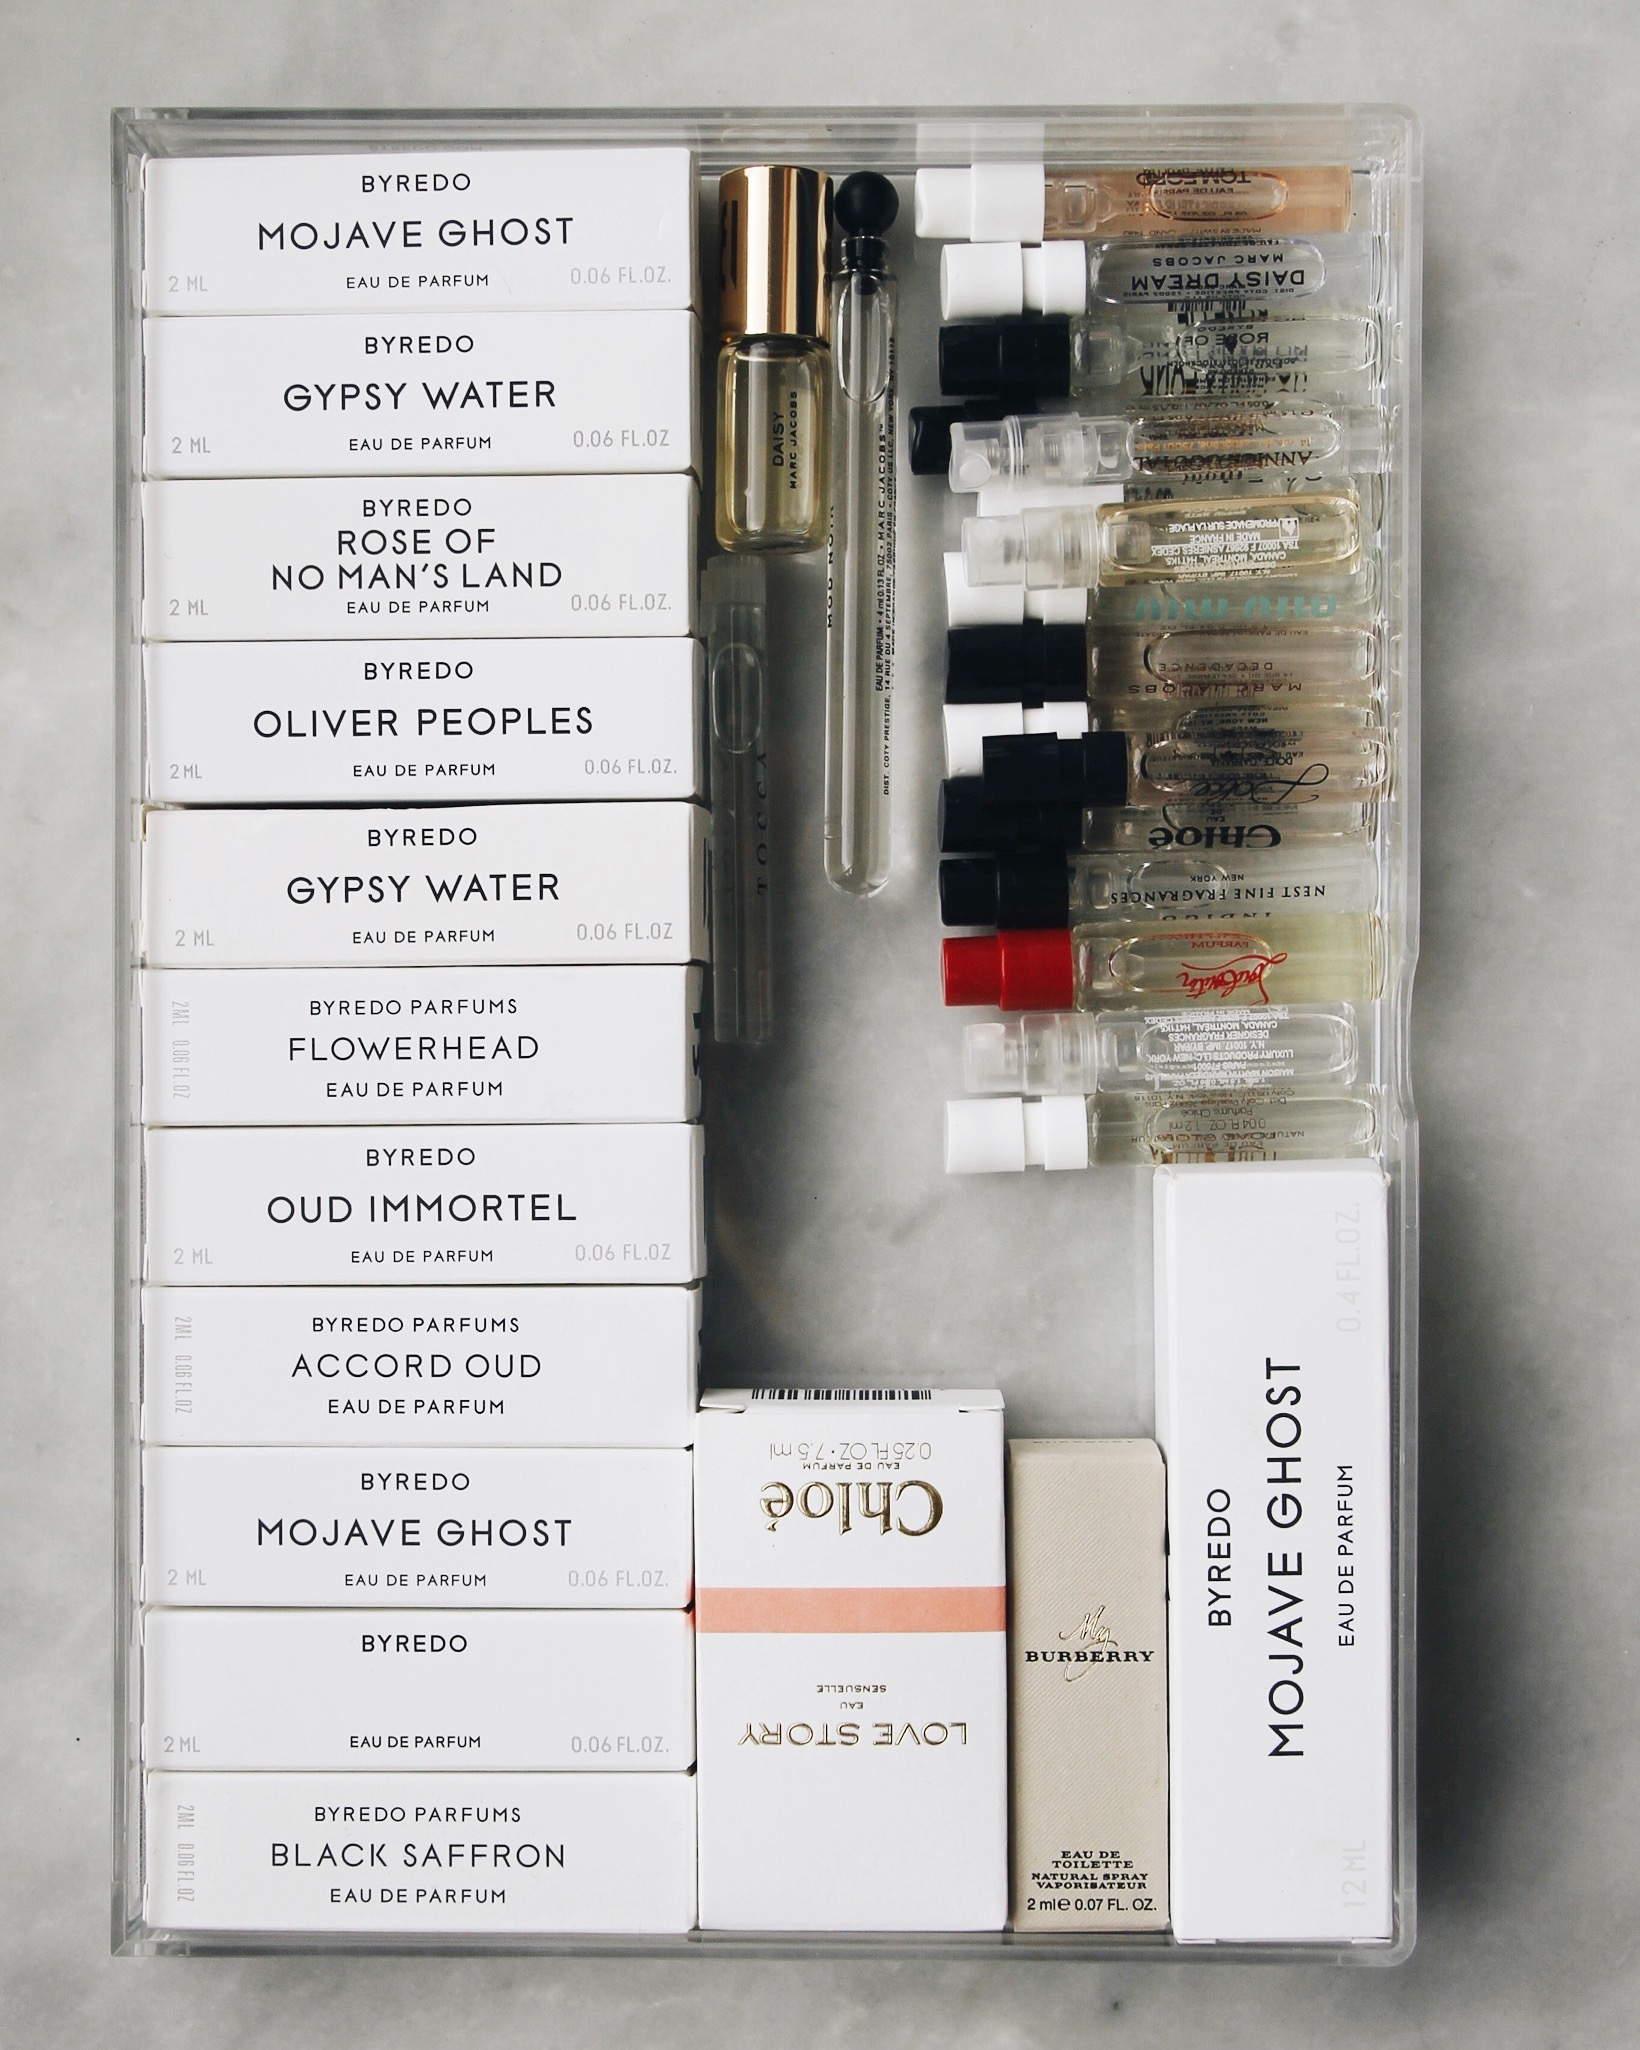 Perfume Samples: Where to Get and How to Store, Perfume Sample Collection, Perfume Samples, How to Get Perfume Samples, Perfume Sample Storage